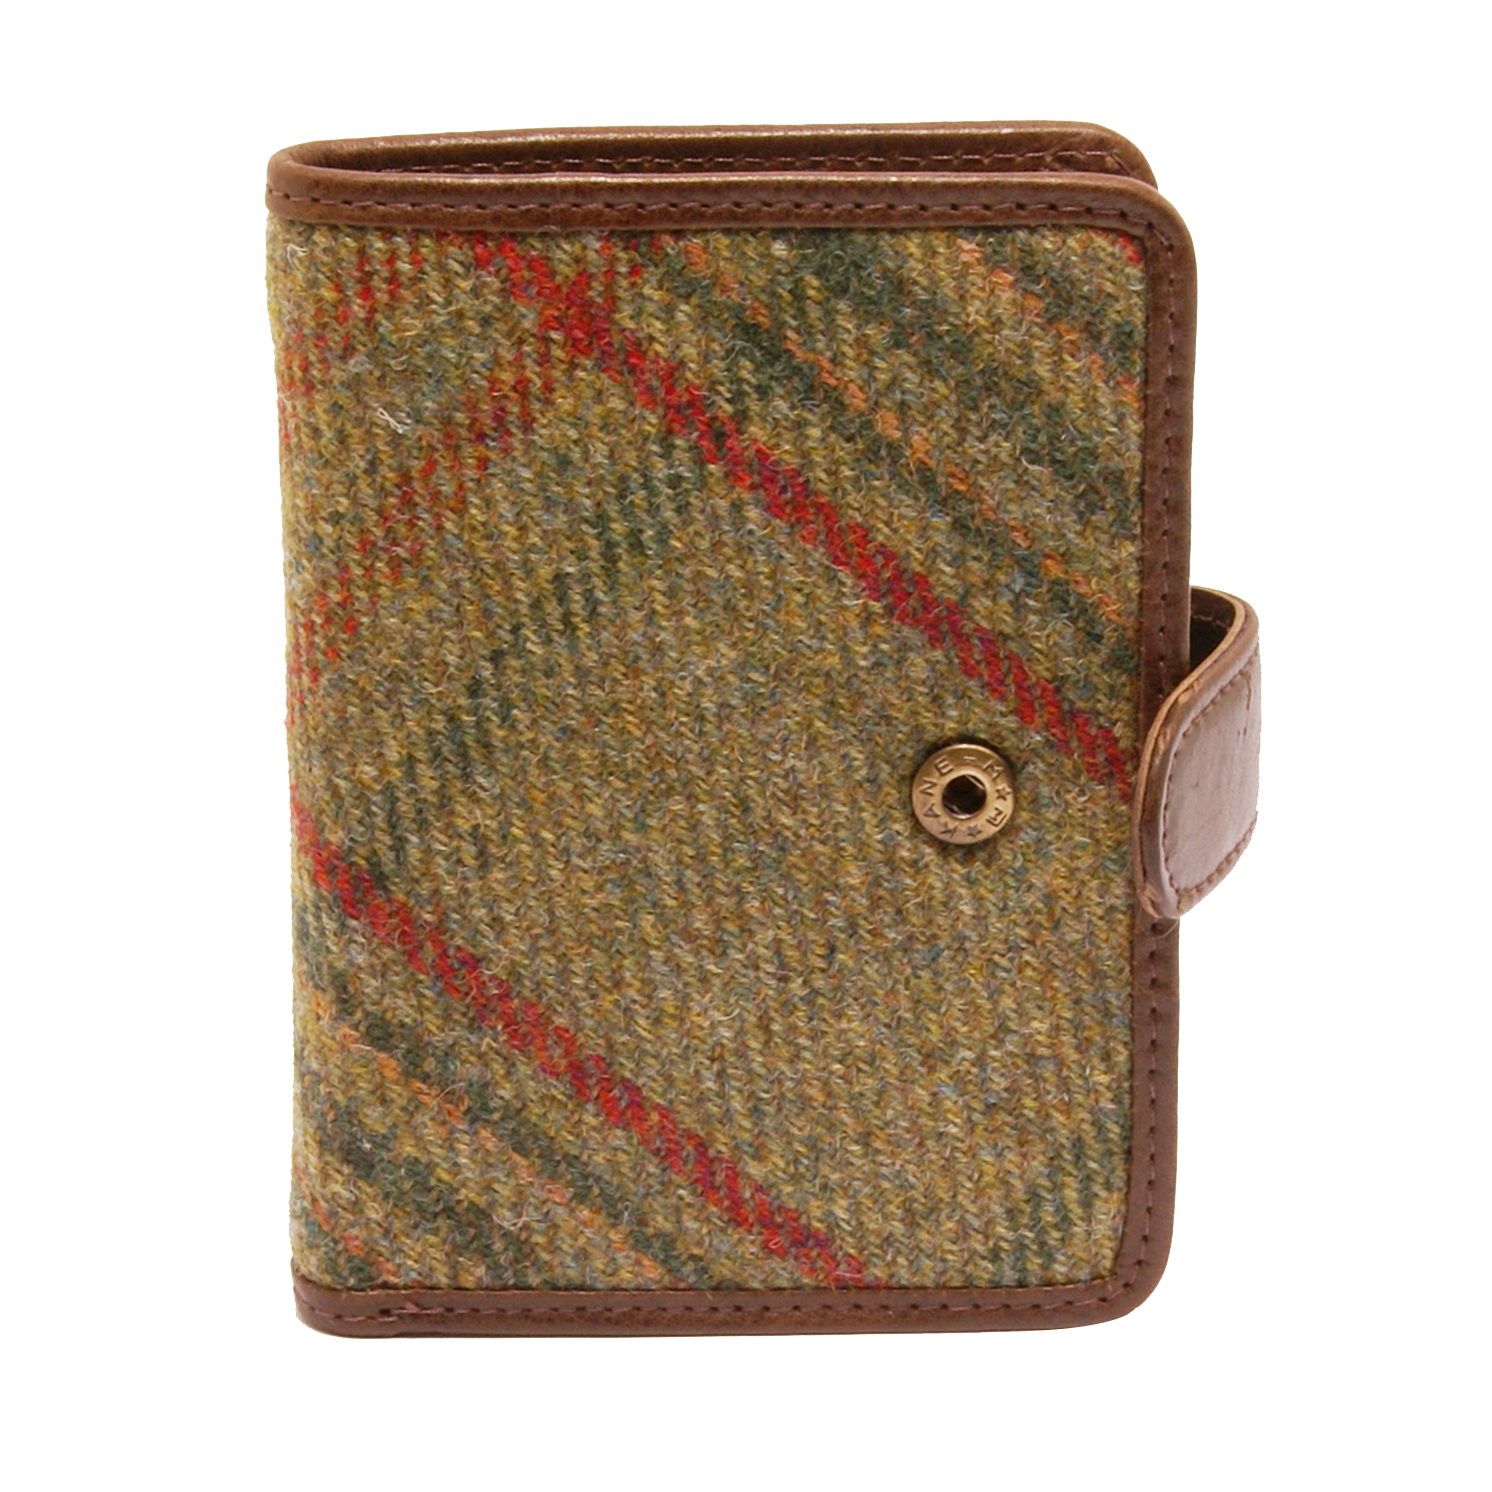 PellMell – Green Islay Tweed Wallet with Coin Purse and Brown Leather Trim